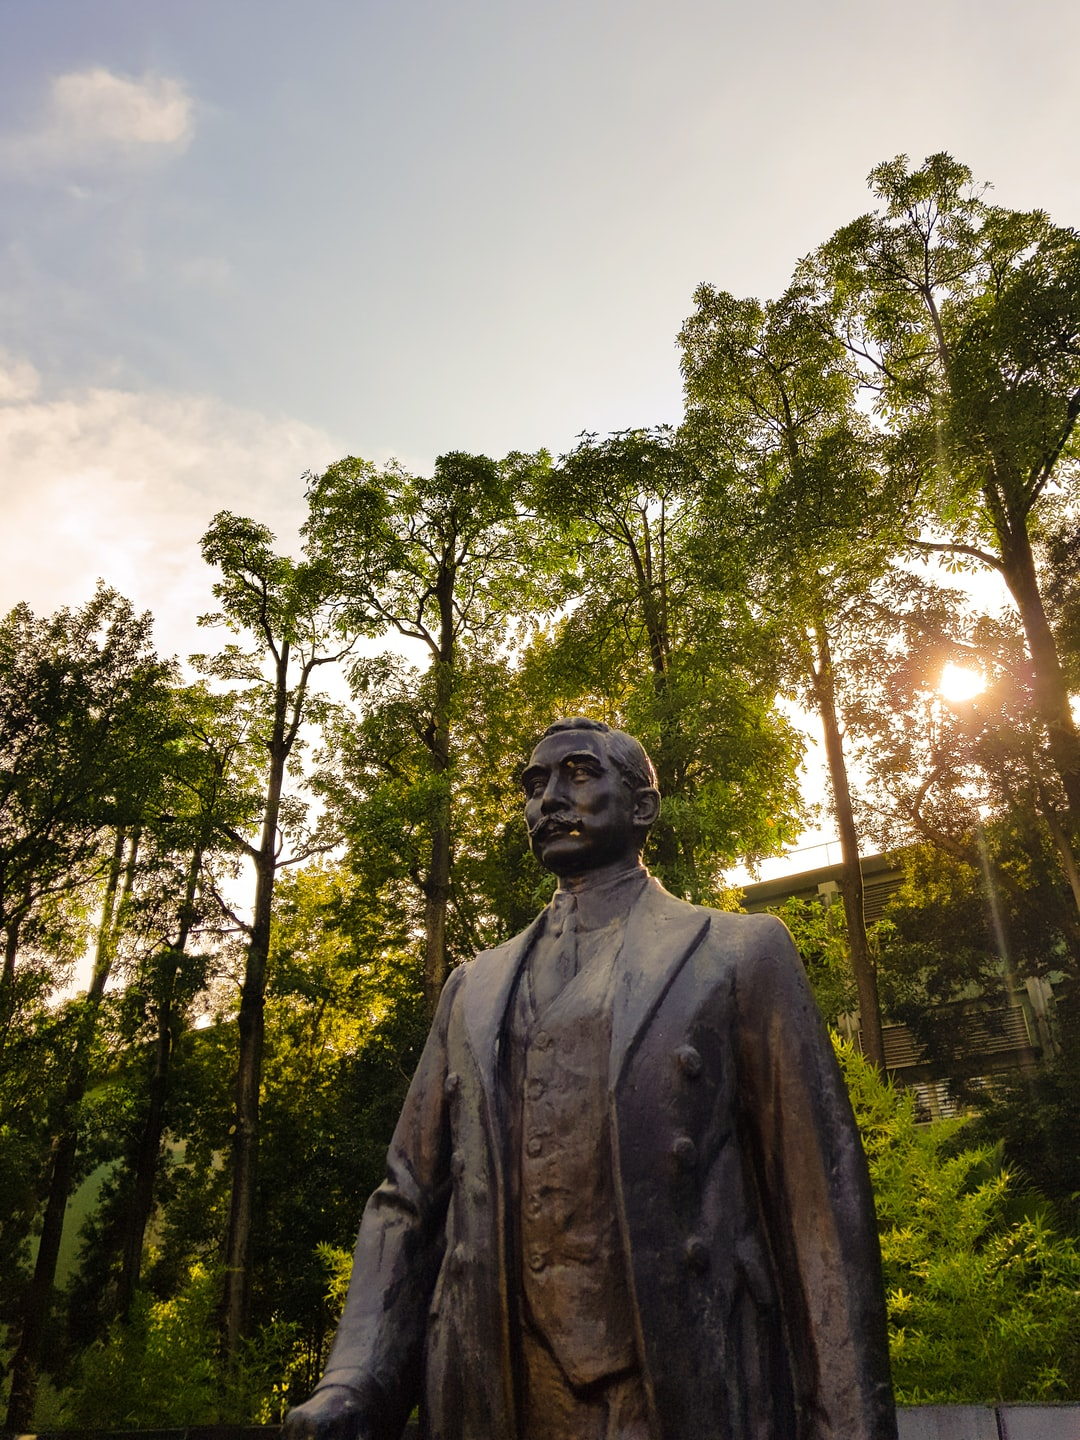 Sun Yat-Sen Statue at Sun Yat-Sen Memorial Hall. I am currently studying at NTUST in Taipei and yesterday I had the chance to go there